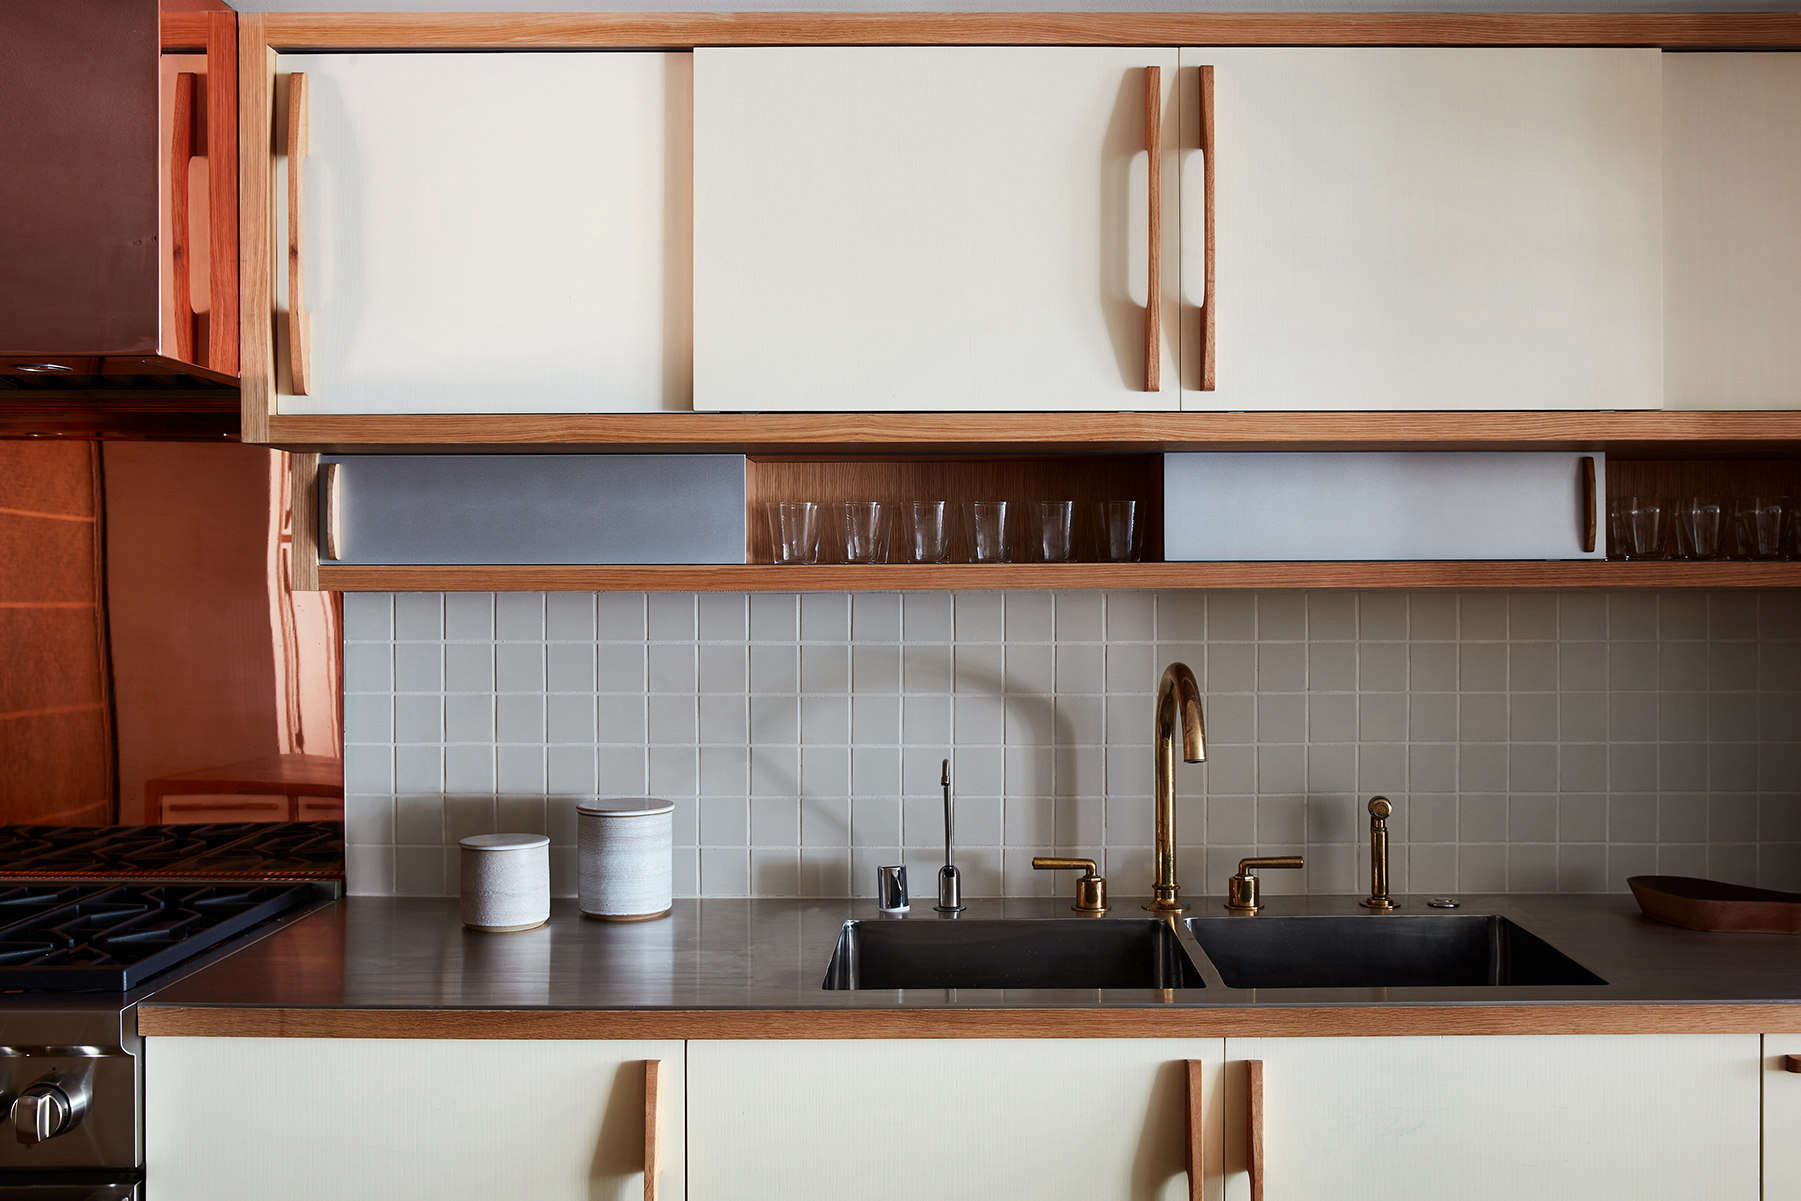 Kitchen of the Week: French Mid-Century Style in Santa Monica - Remodelista